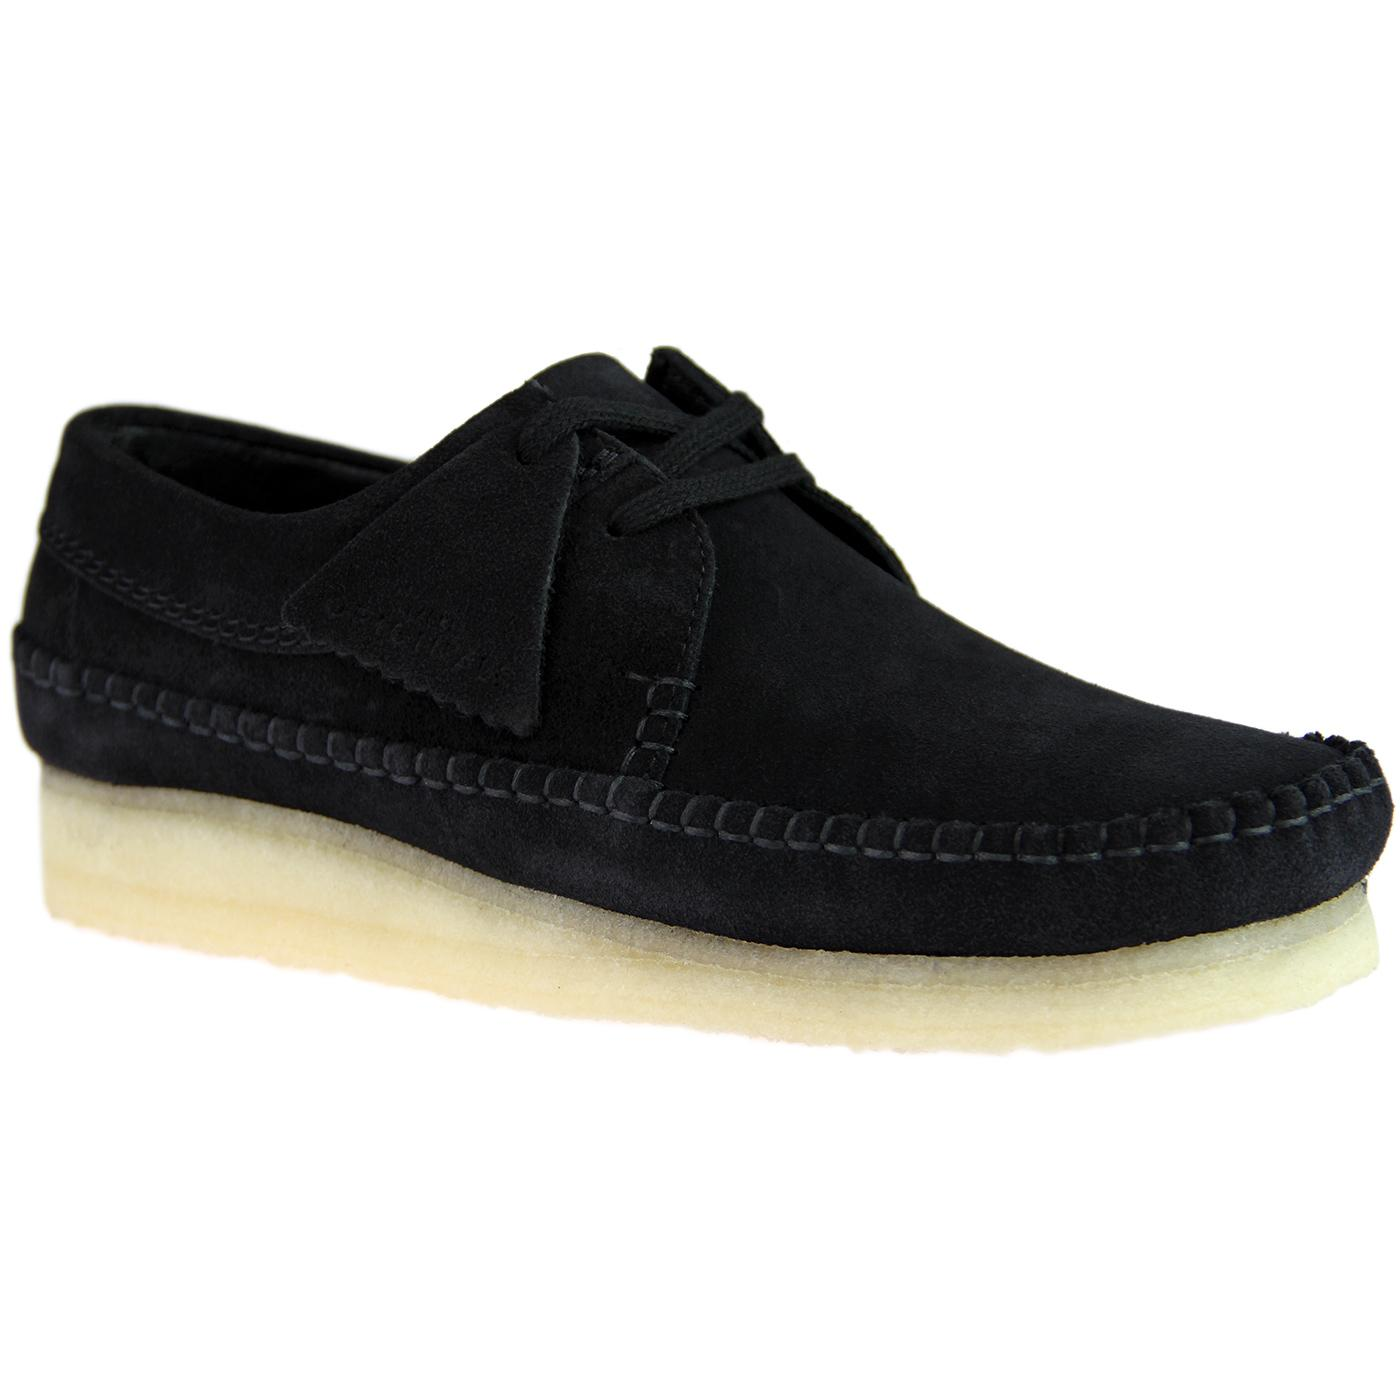 Weaver CLARKS ORIGINALS Suede Moccasin Shoes BLACK